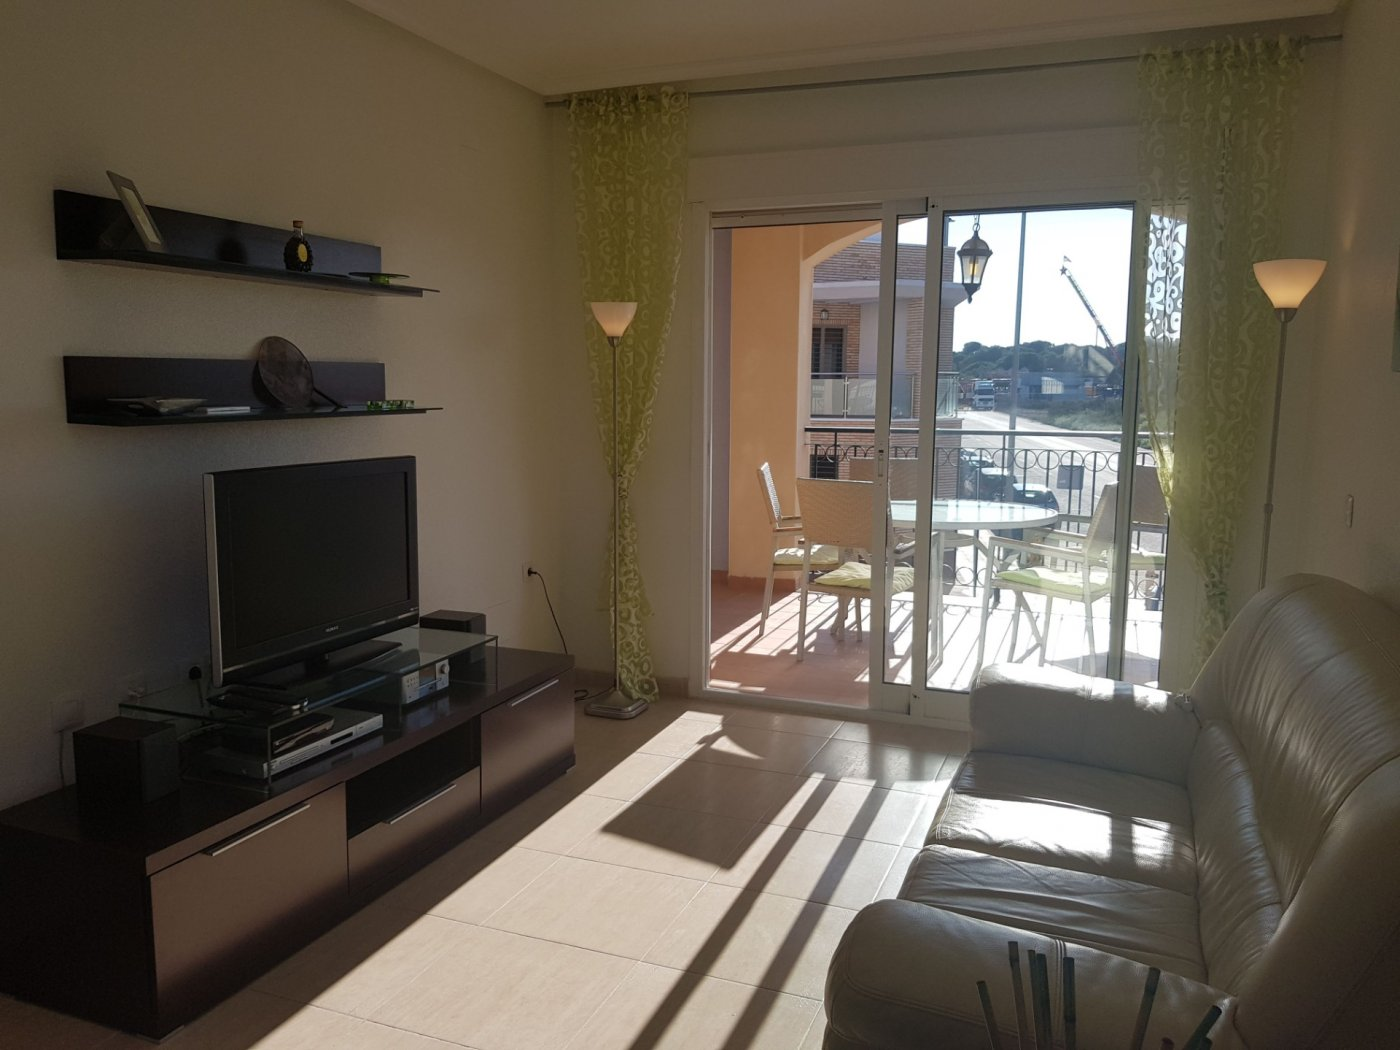 Gallery Image 12 of Fantastic corner apartment on walking distance of beach and shopping centre